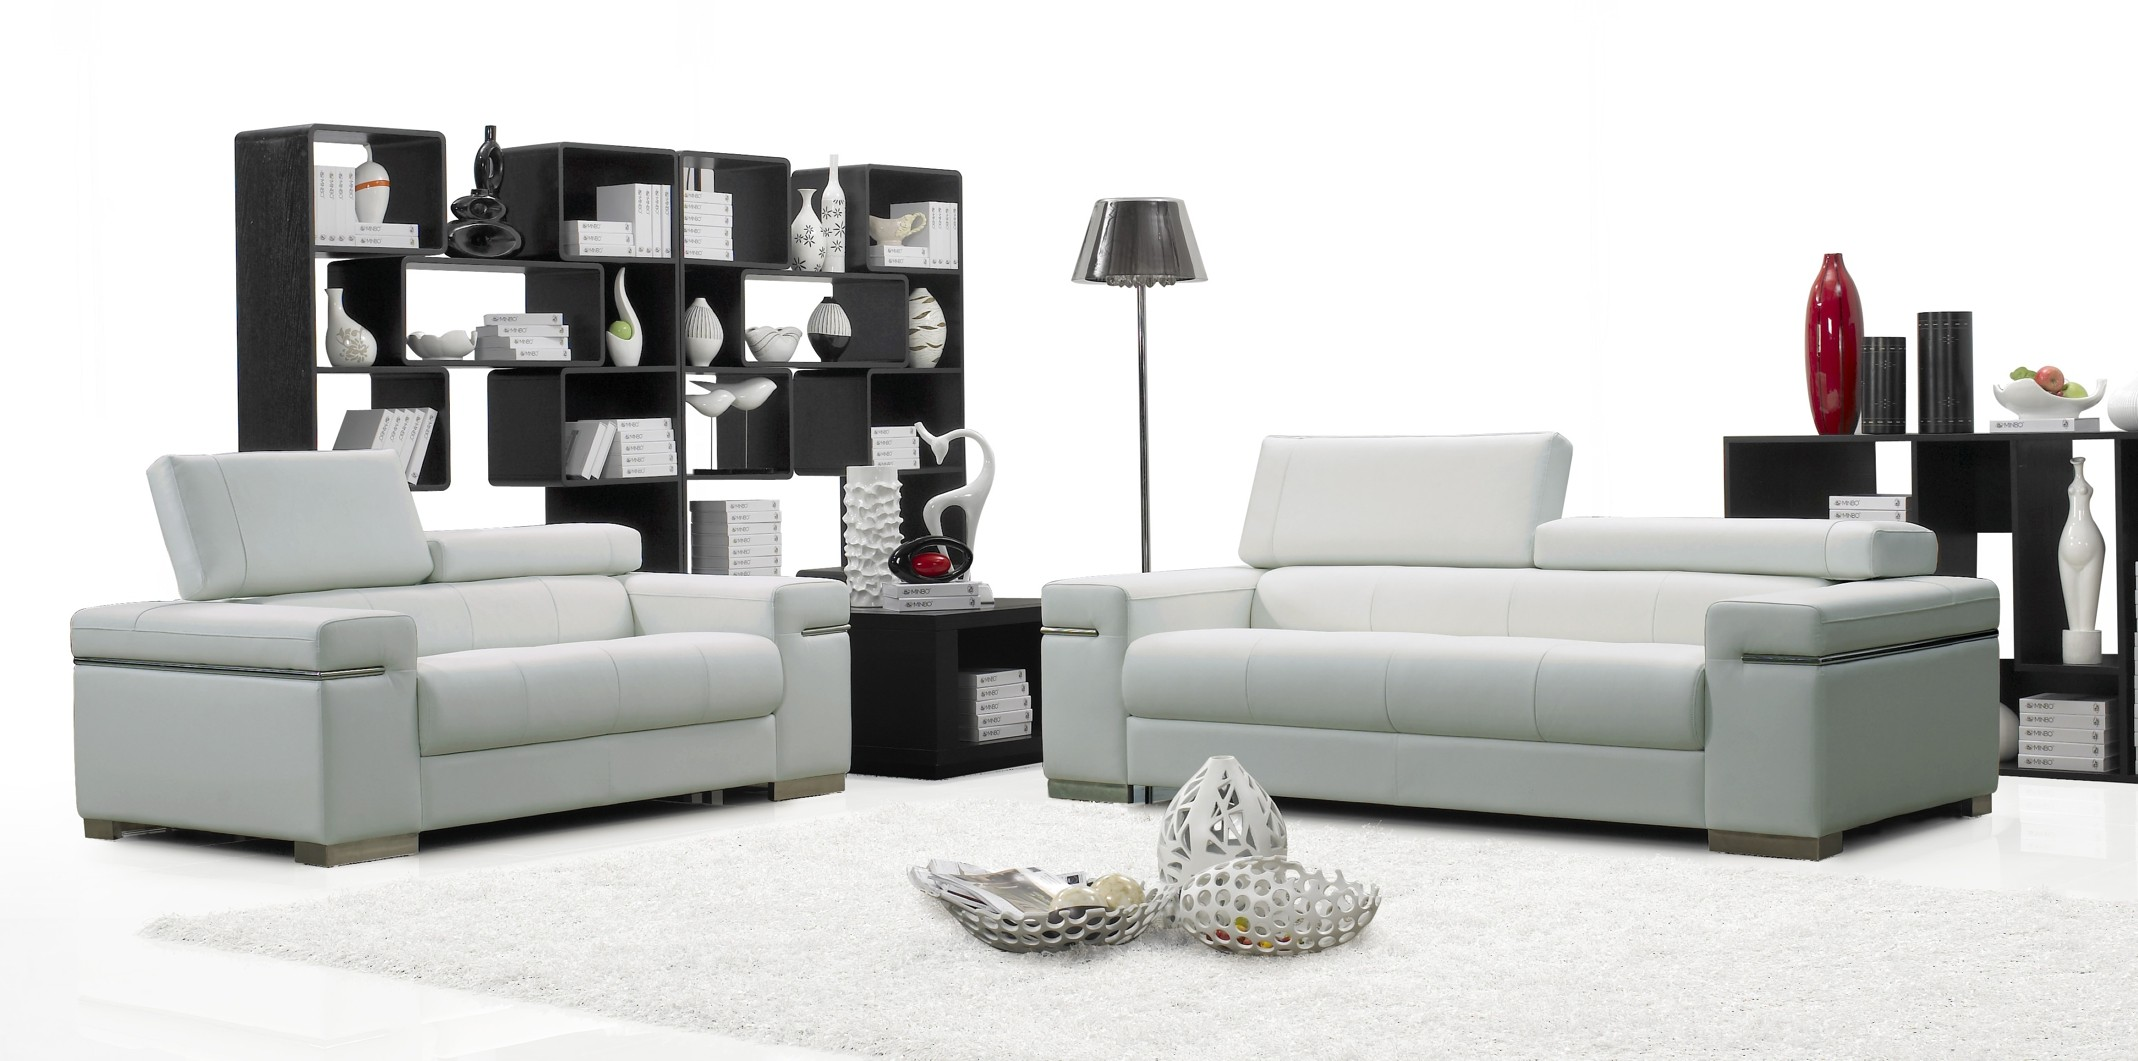 Designer sofa sets pictures mjob blog for J m furniture soho living room collection